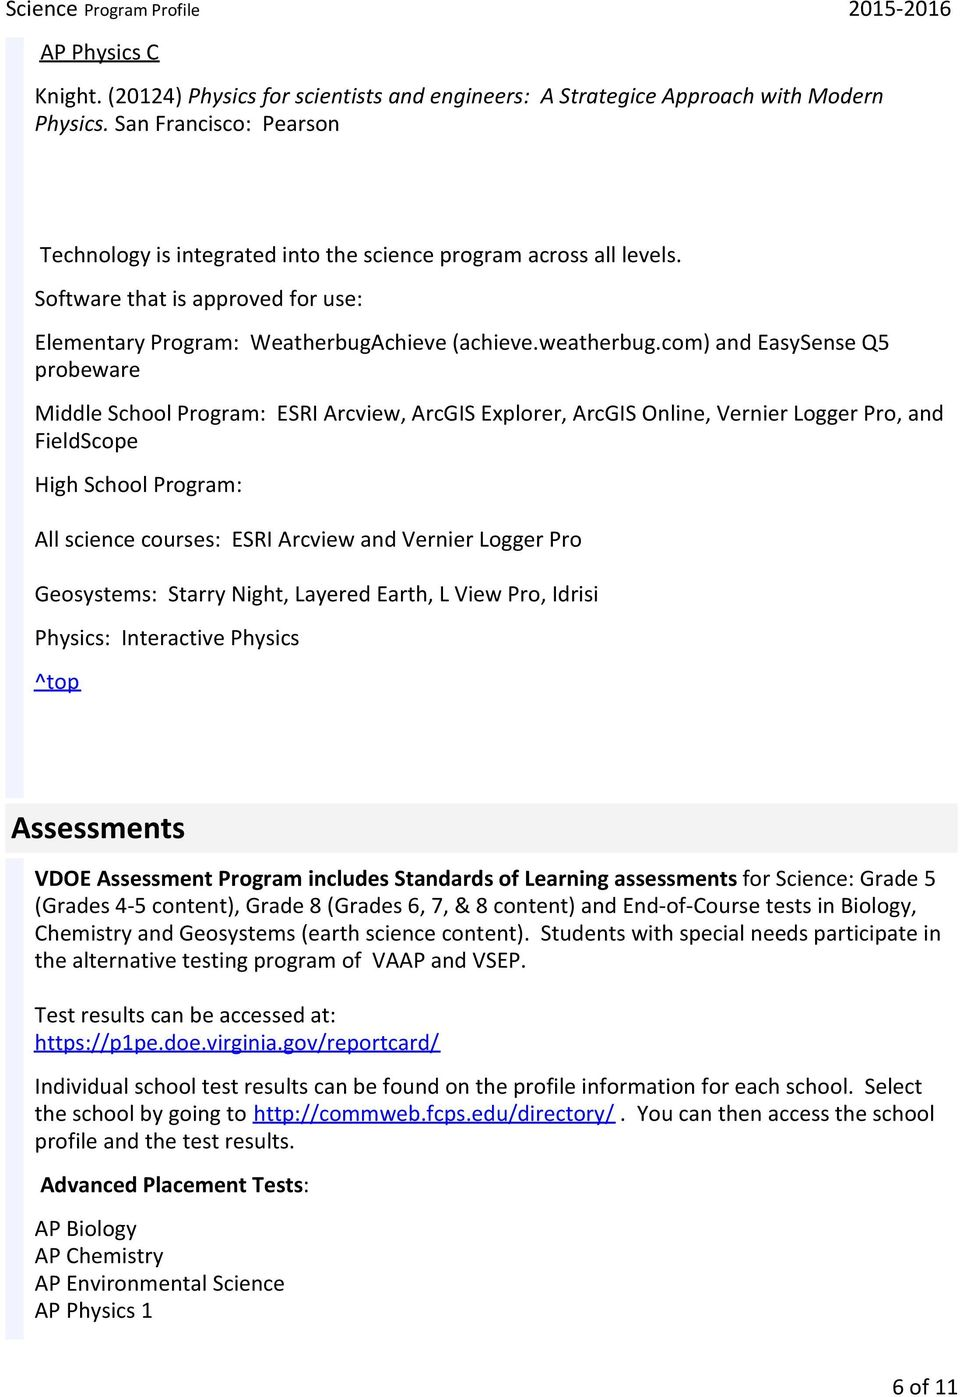 Science  Overview  Student Summary  Science Program Profile